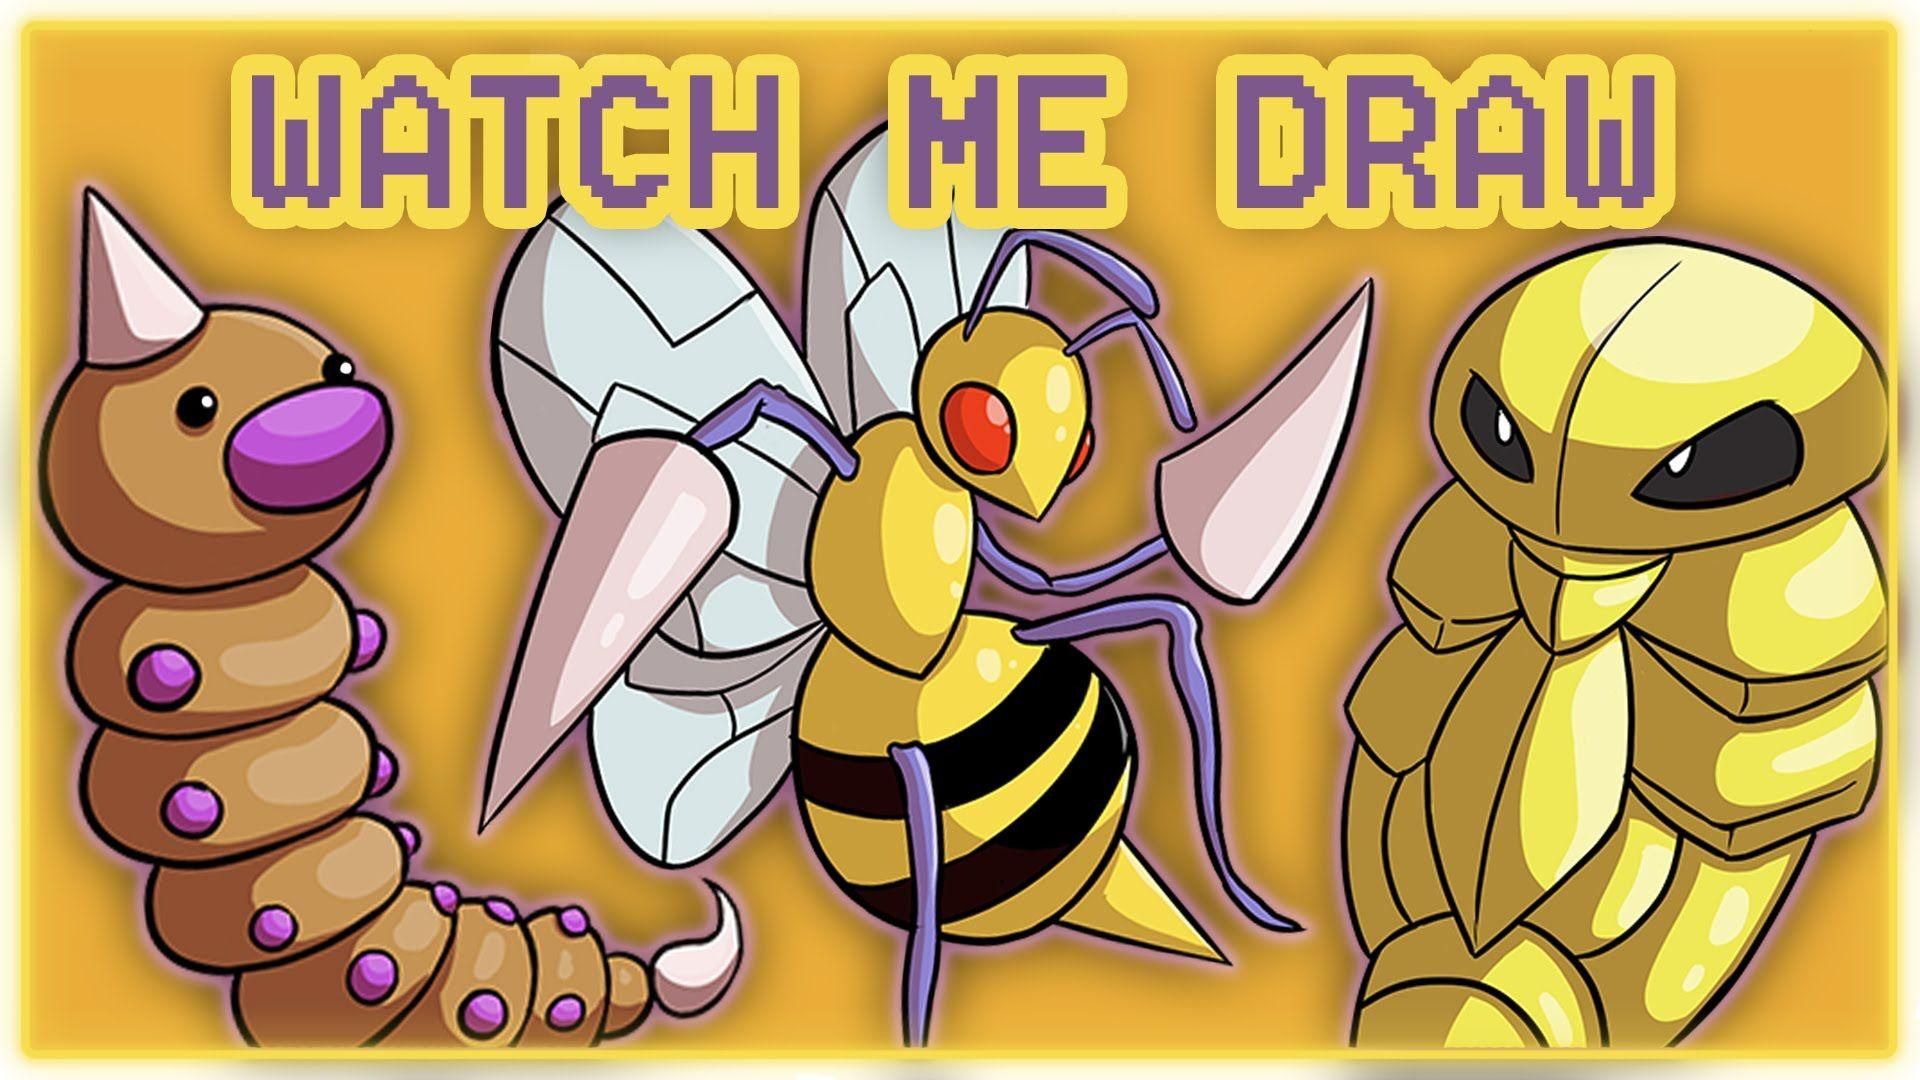 Watch Me Draw: Weedle, Kakuna and Beedrill!